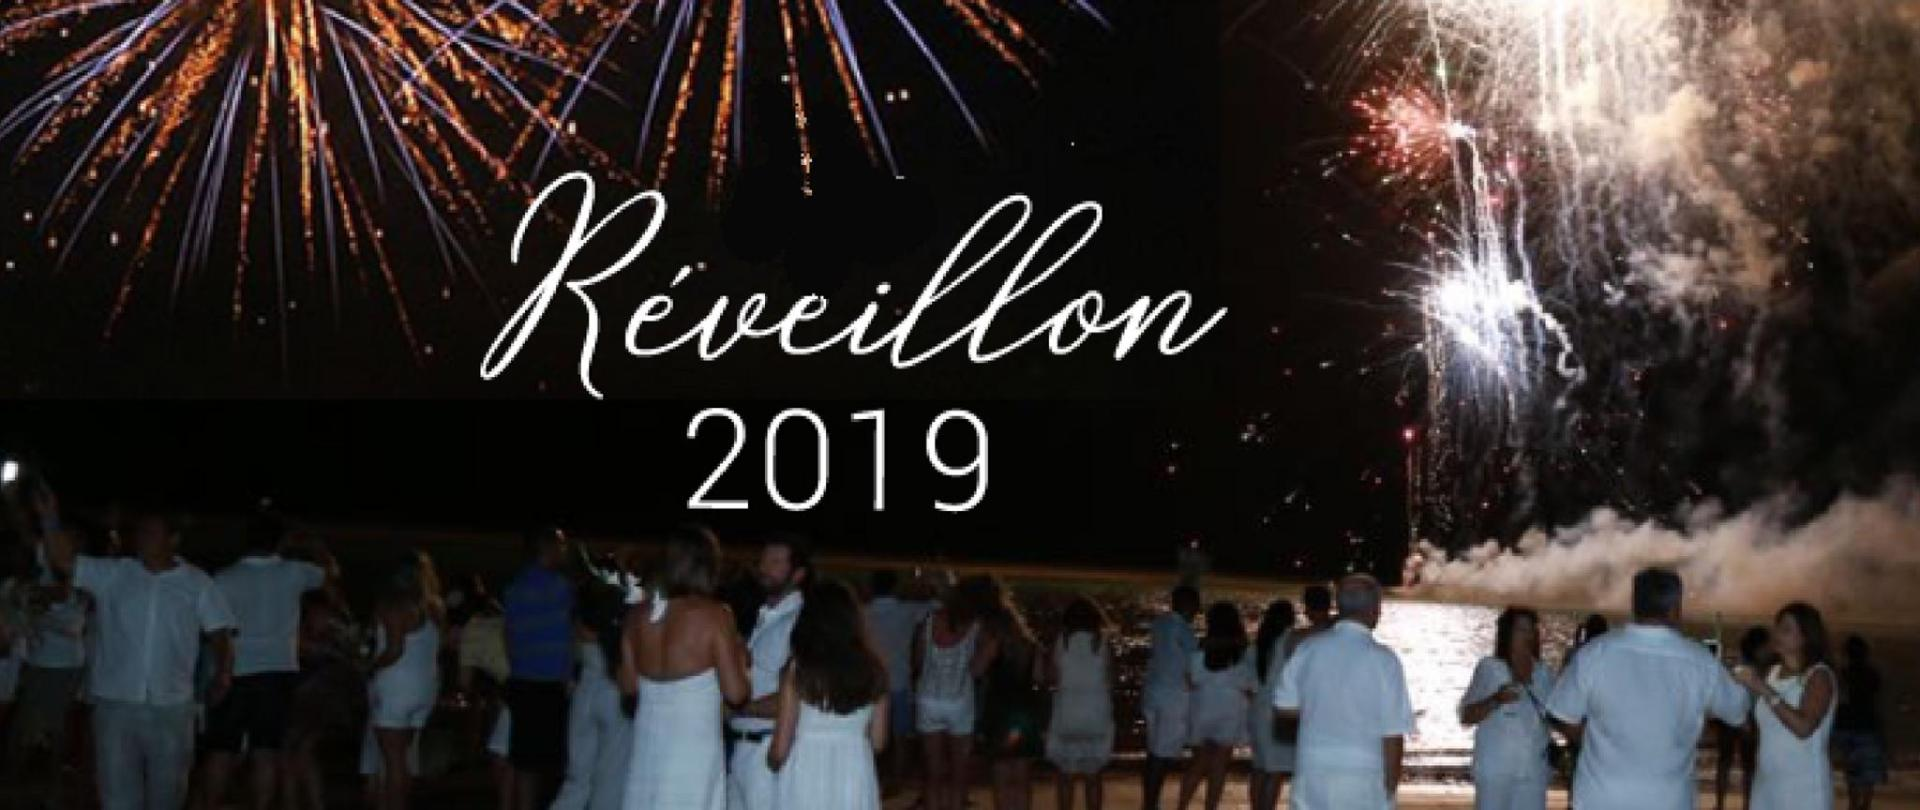 serrambi-resort-reveillon-2019 (1).png